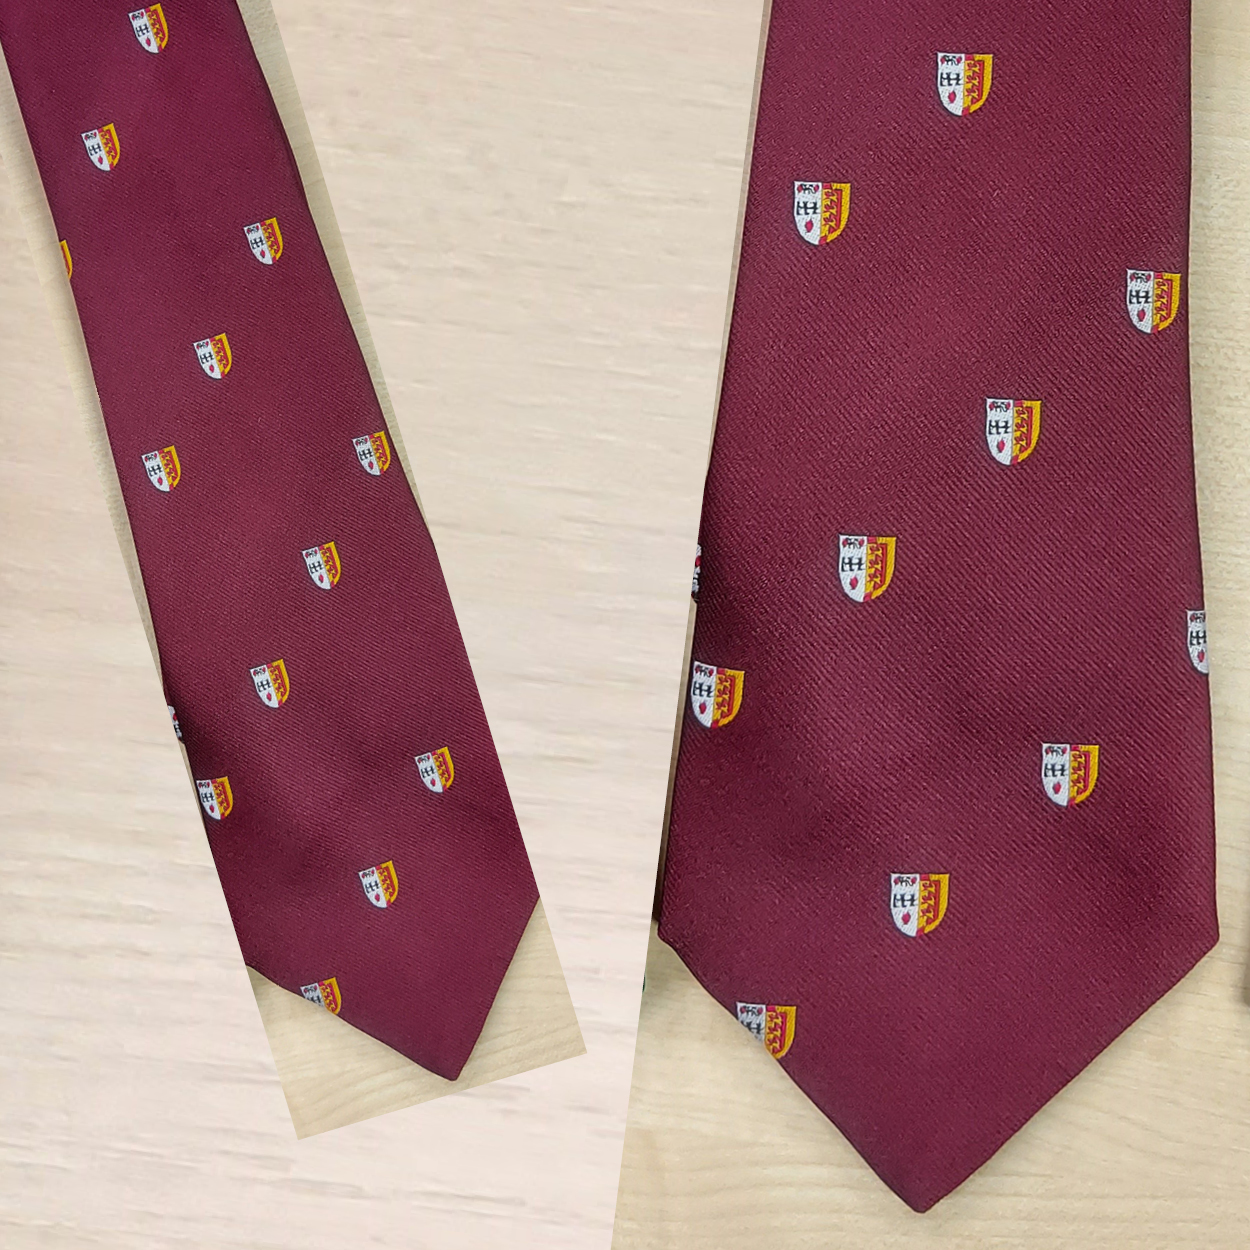 Ties - Maroon with Crest